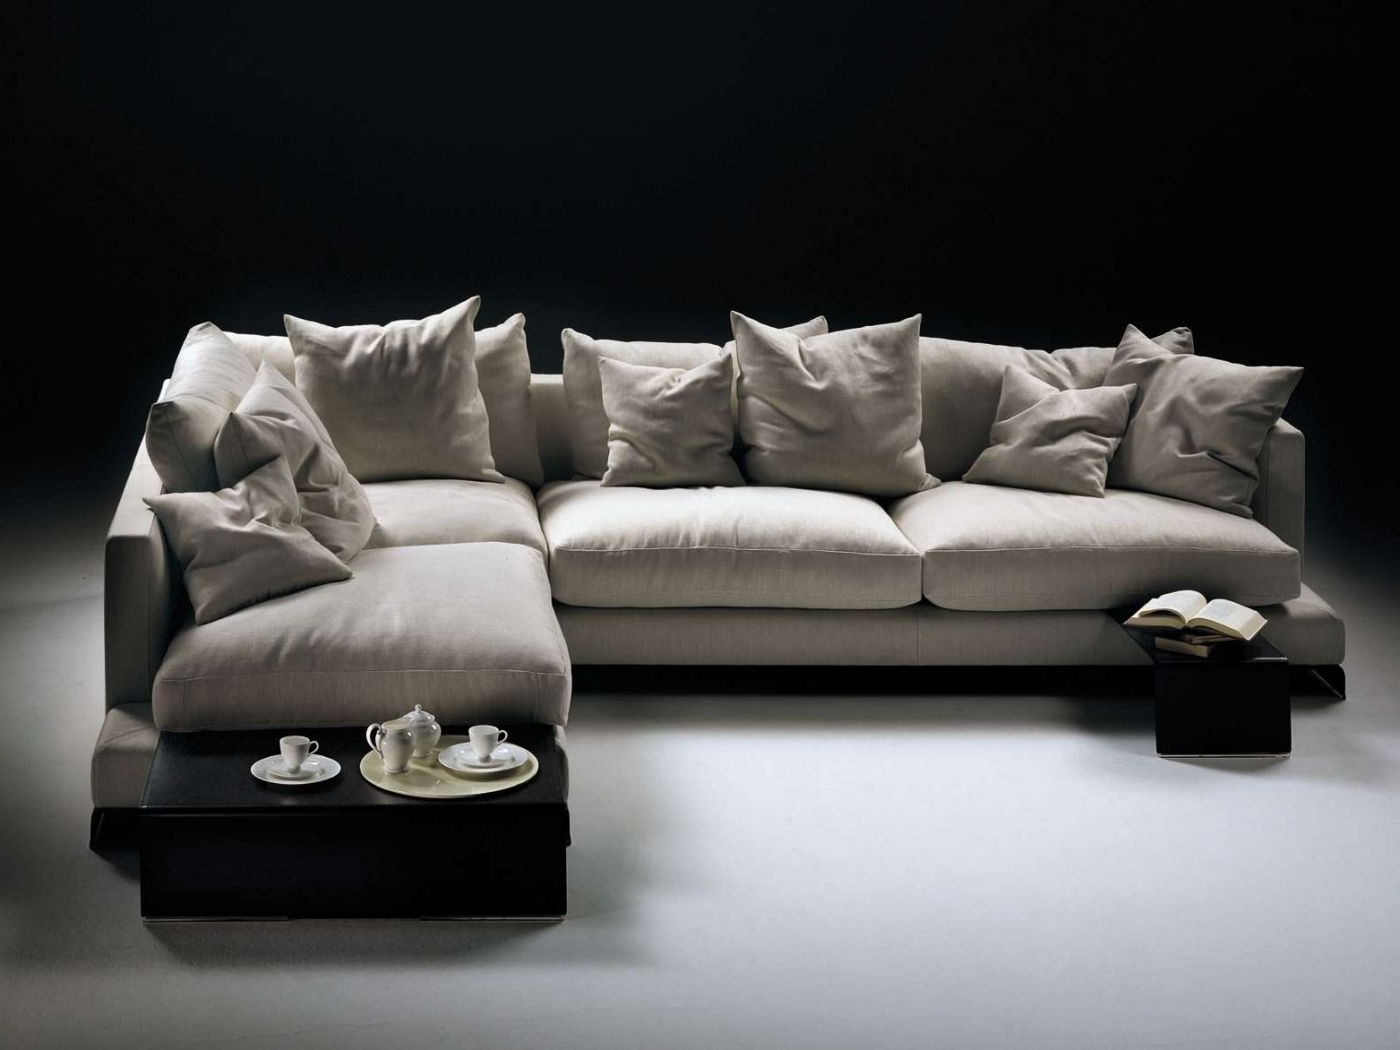 Best And Newest Nz Sectional Sofas Inside Studio Italia (View 12 of 15)